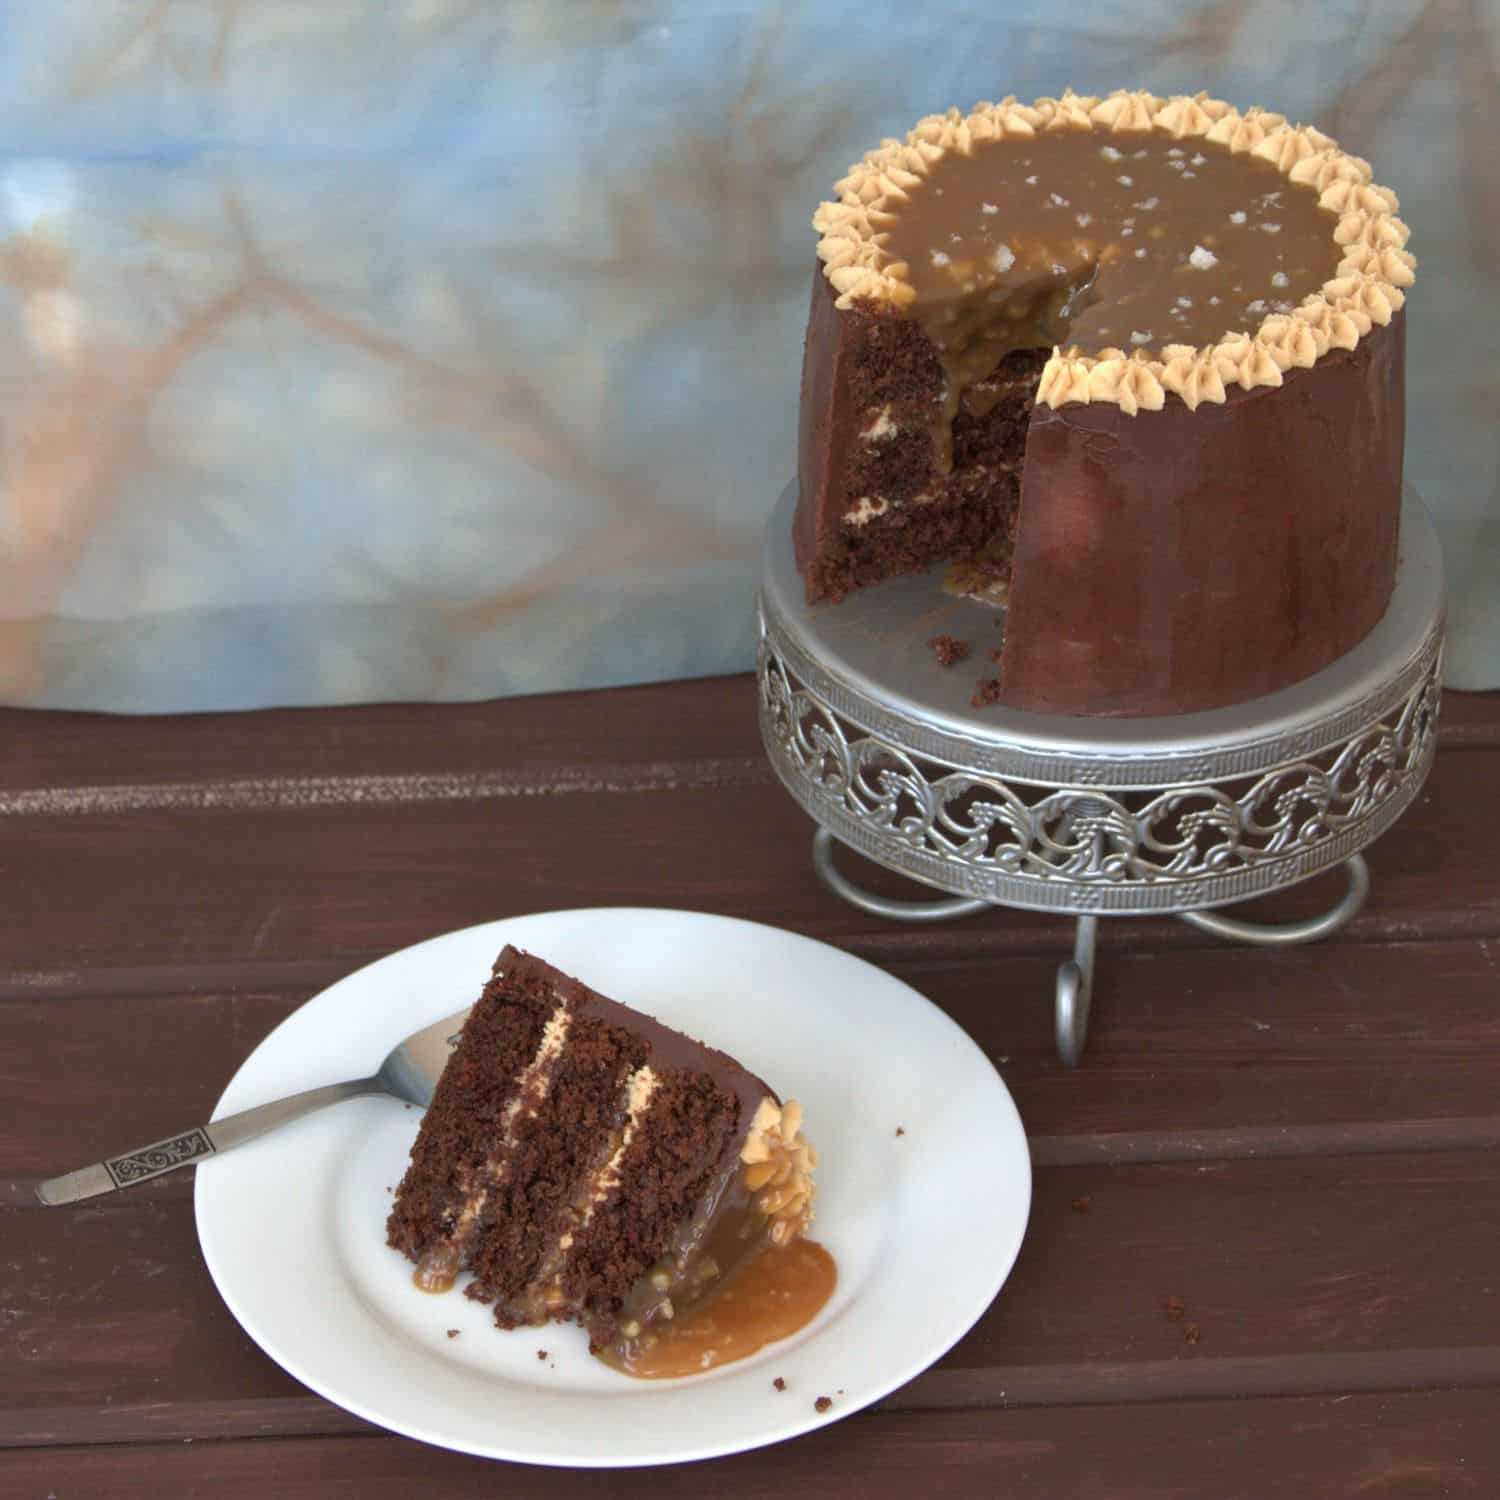 Practically guarantee a standing ovation with this Salted Caramel Chocolate Peanut Butter Cake recipe!